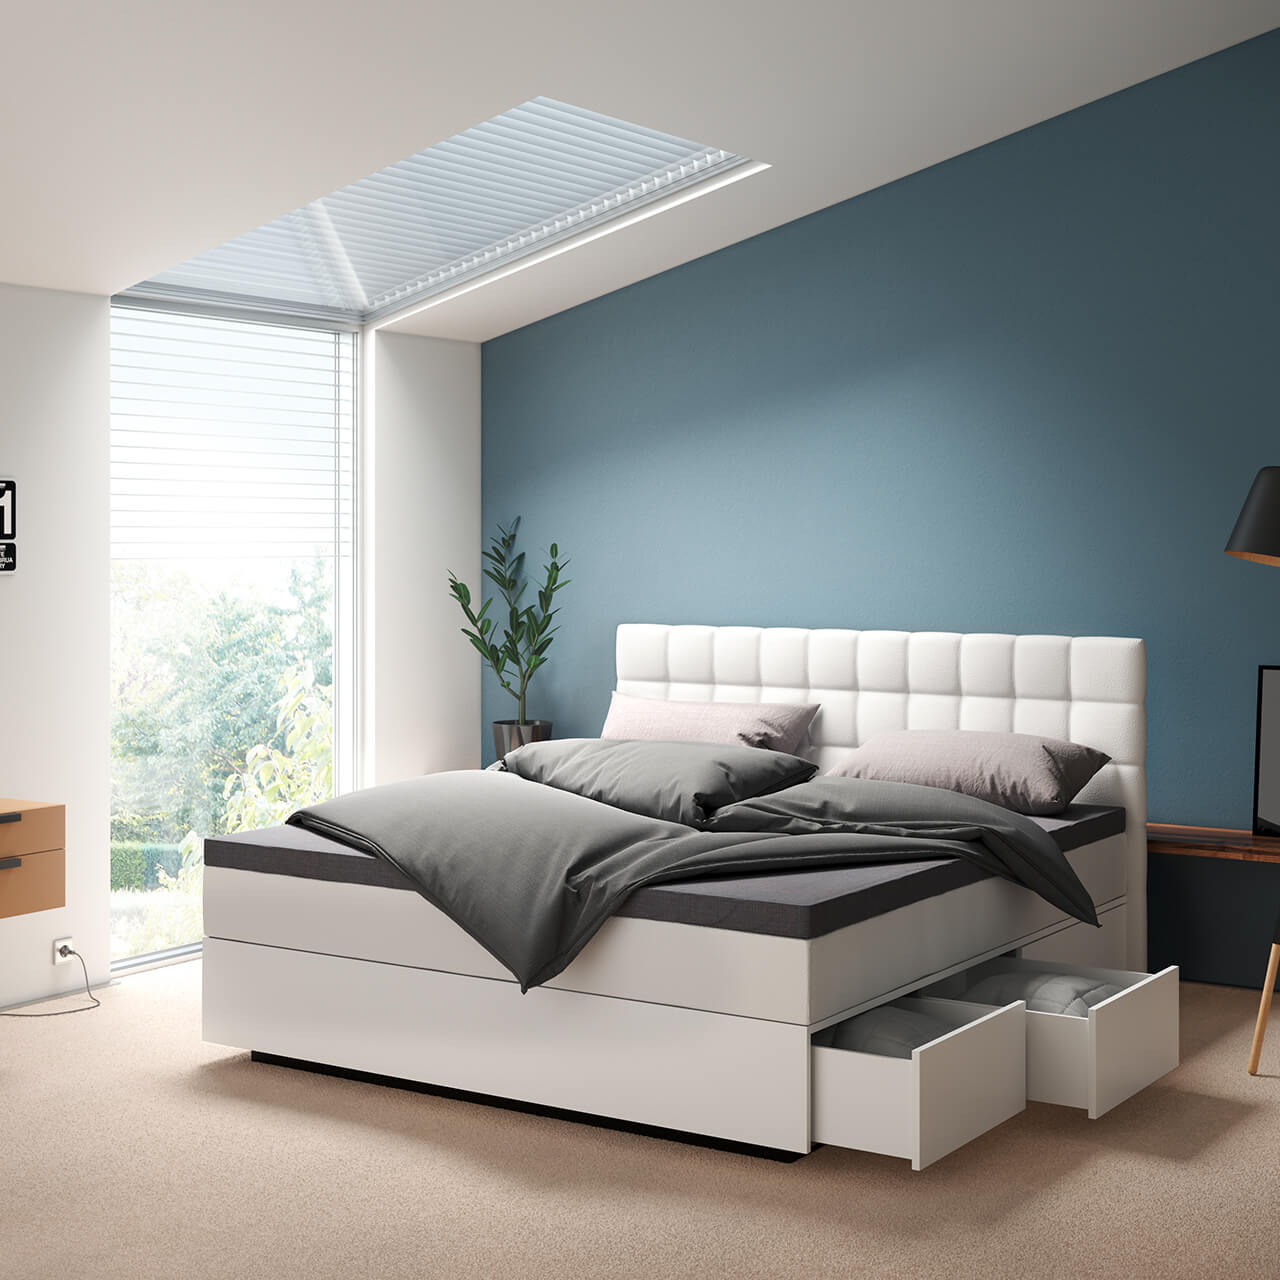 suma boxspring mit schubkasten boxspring funktion bettrahmen suma wasserbetten. Black Bedroom Furniture Sets. Home Design Ideas